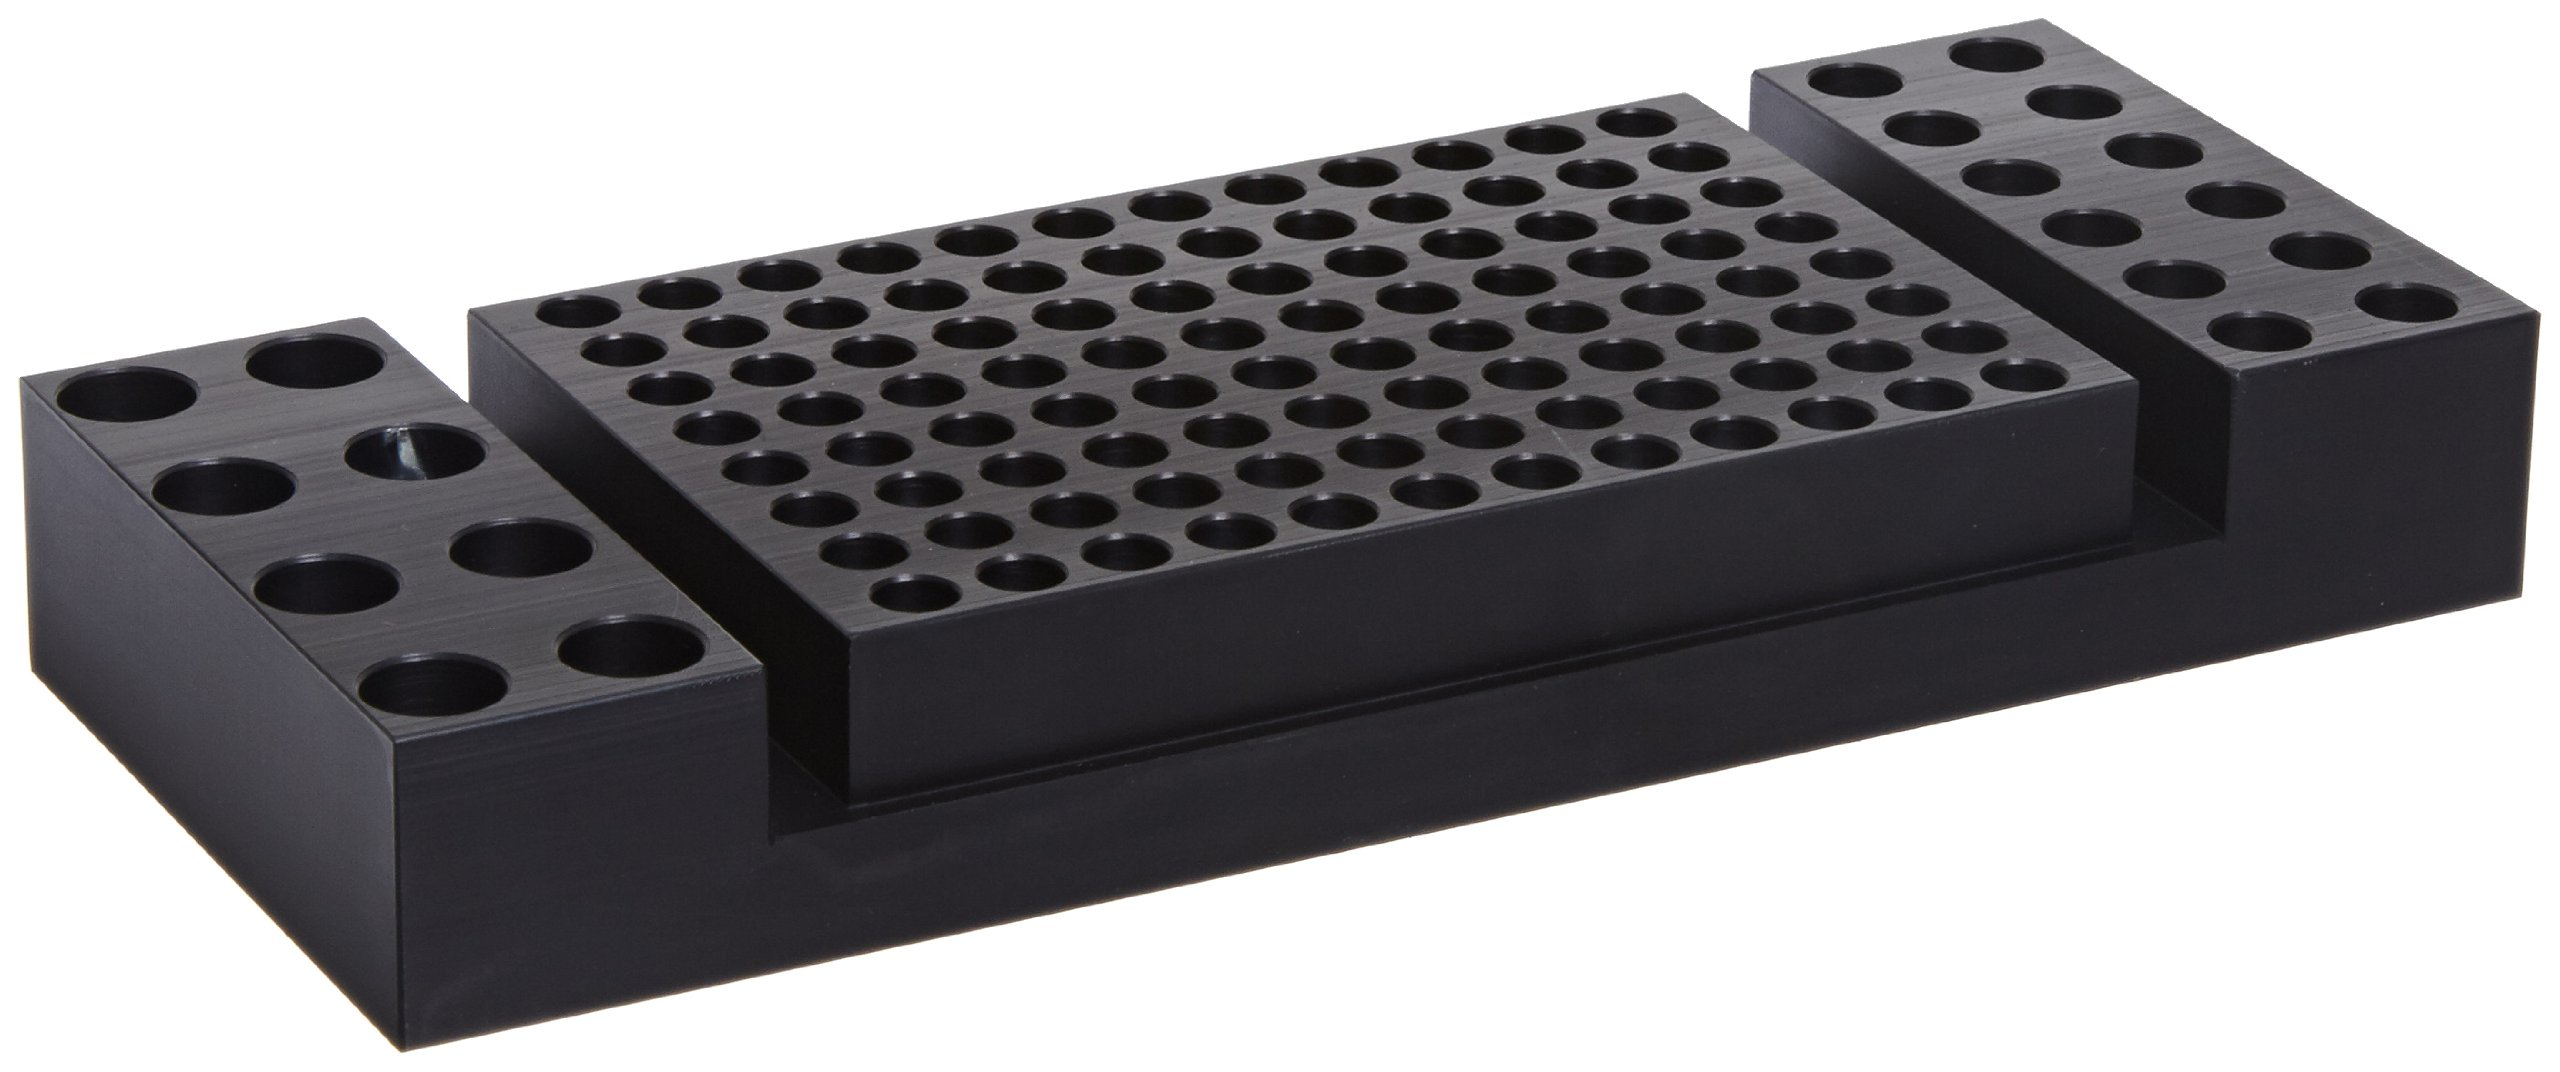 Chemglass CLS-3620-01 Aluminum Cool Block for 96 Well PCR Plates/Tubes